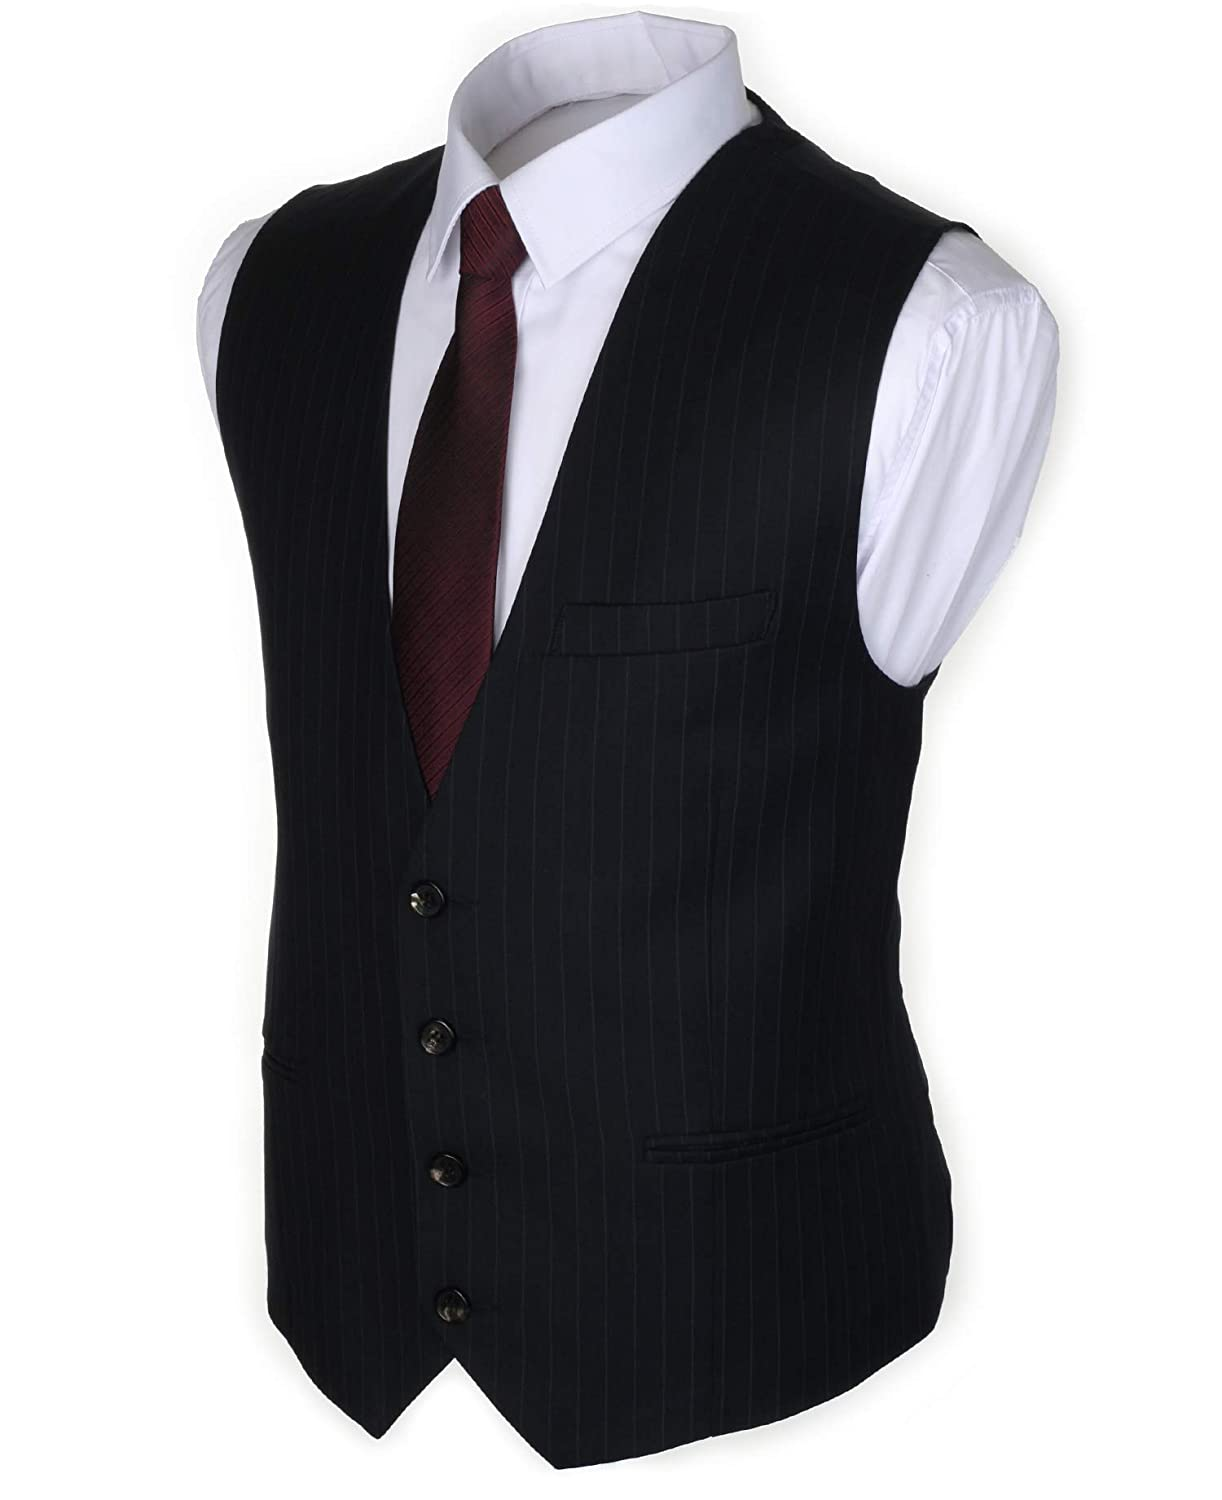 1920s Style Mens Vests Ruth&Boaz Mens 3Pockets 4Button Business Suit Vest $29.90 AT vintagedancer.com